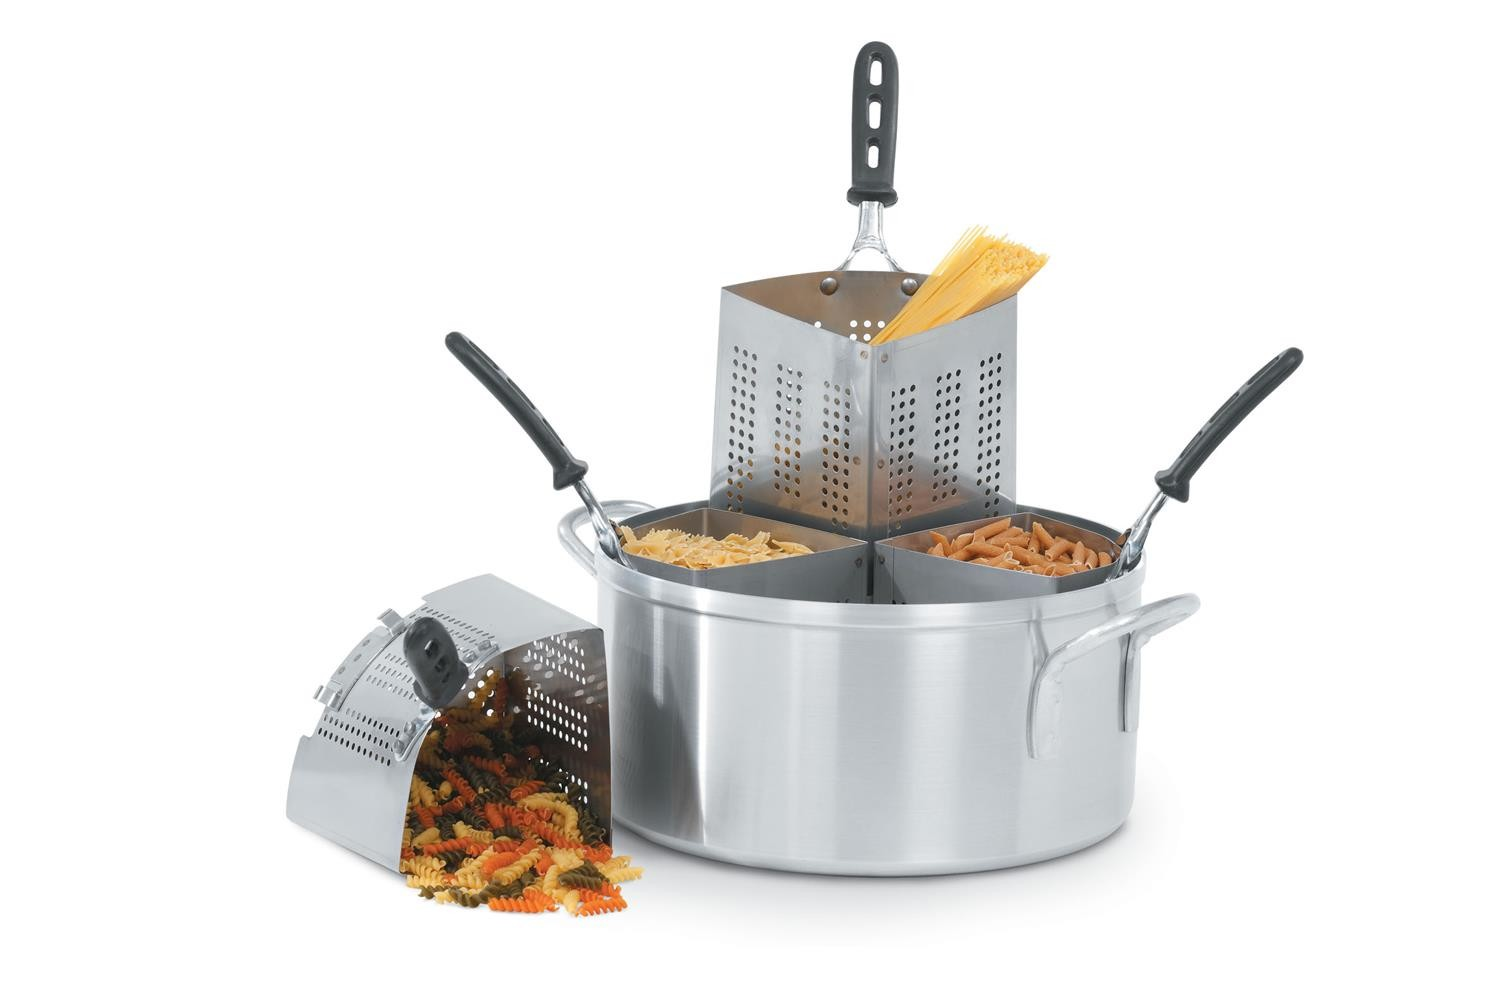 Vollrath 68127 Wear-Ever Aluminum Pasta and Vegetable Cooker Set 18.5 Qt.